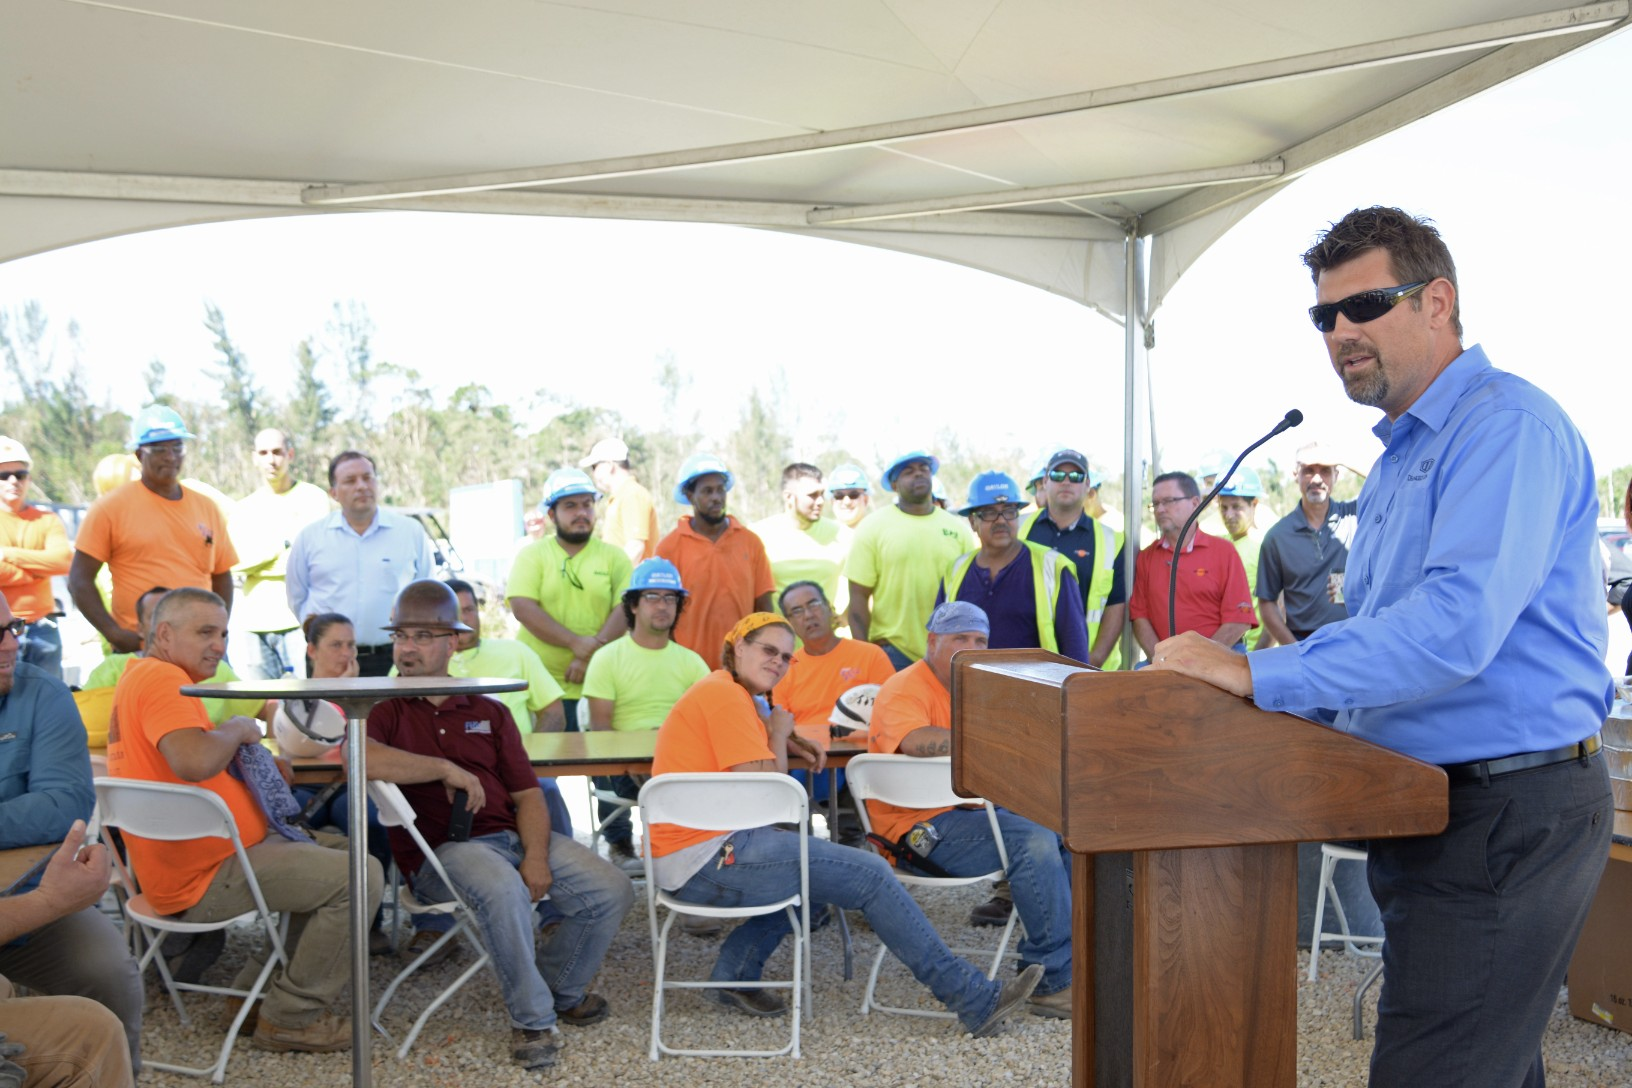 DeAngelis Diamond Holds Topping Out Ceremony at Amavida